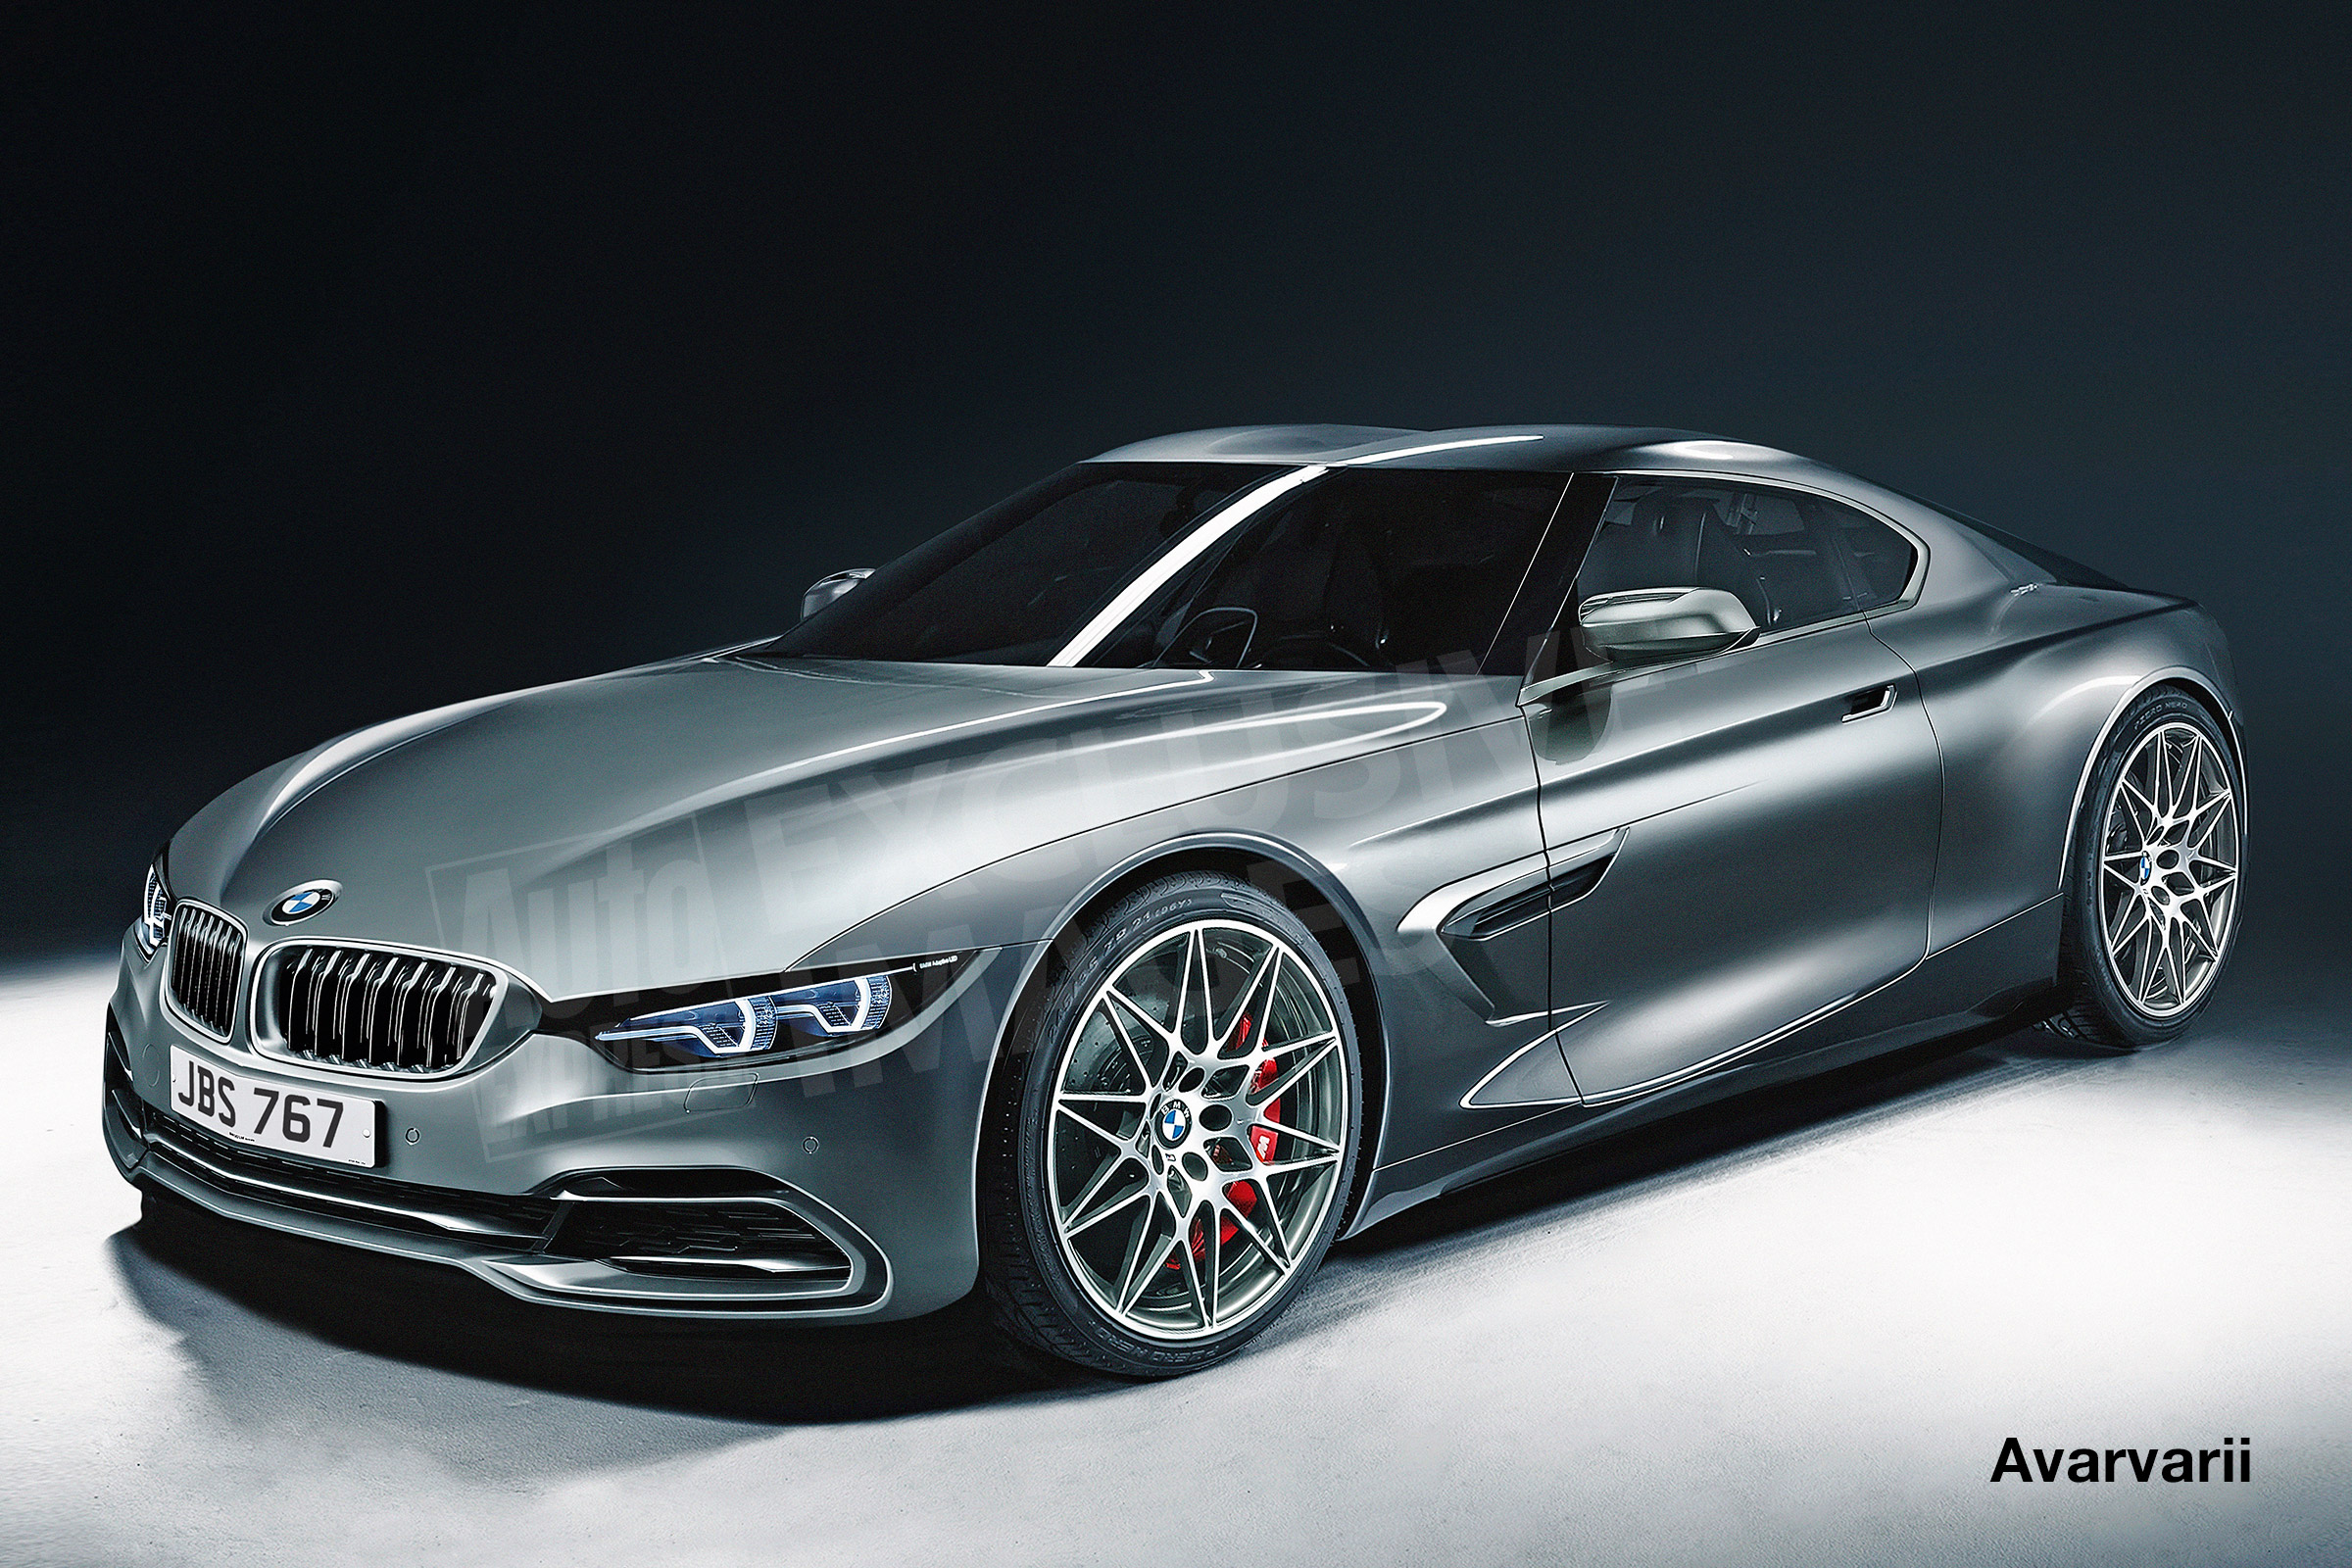 52 Best 2020 BMW 6 Series Exterior and Interior